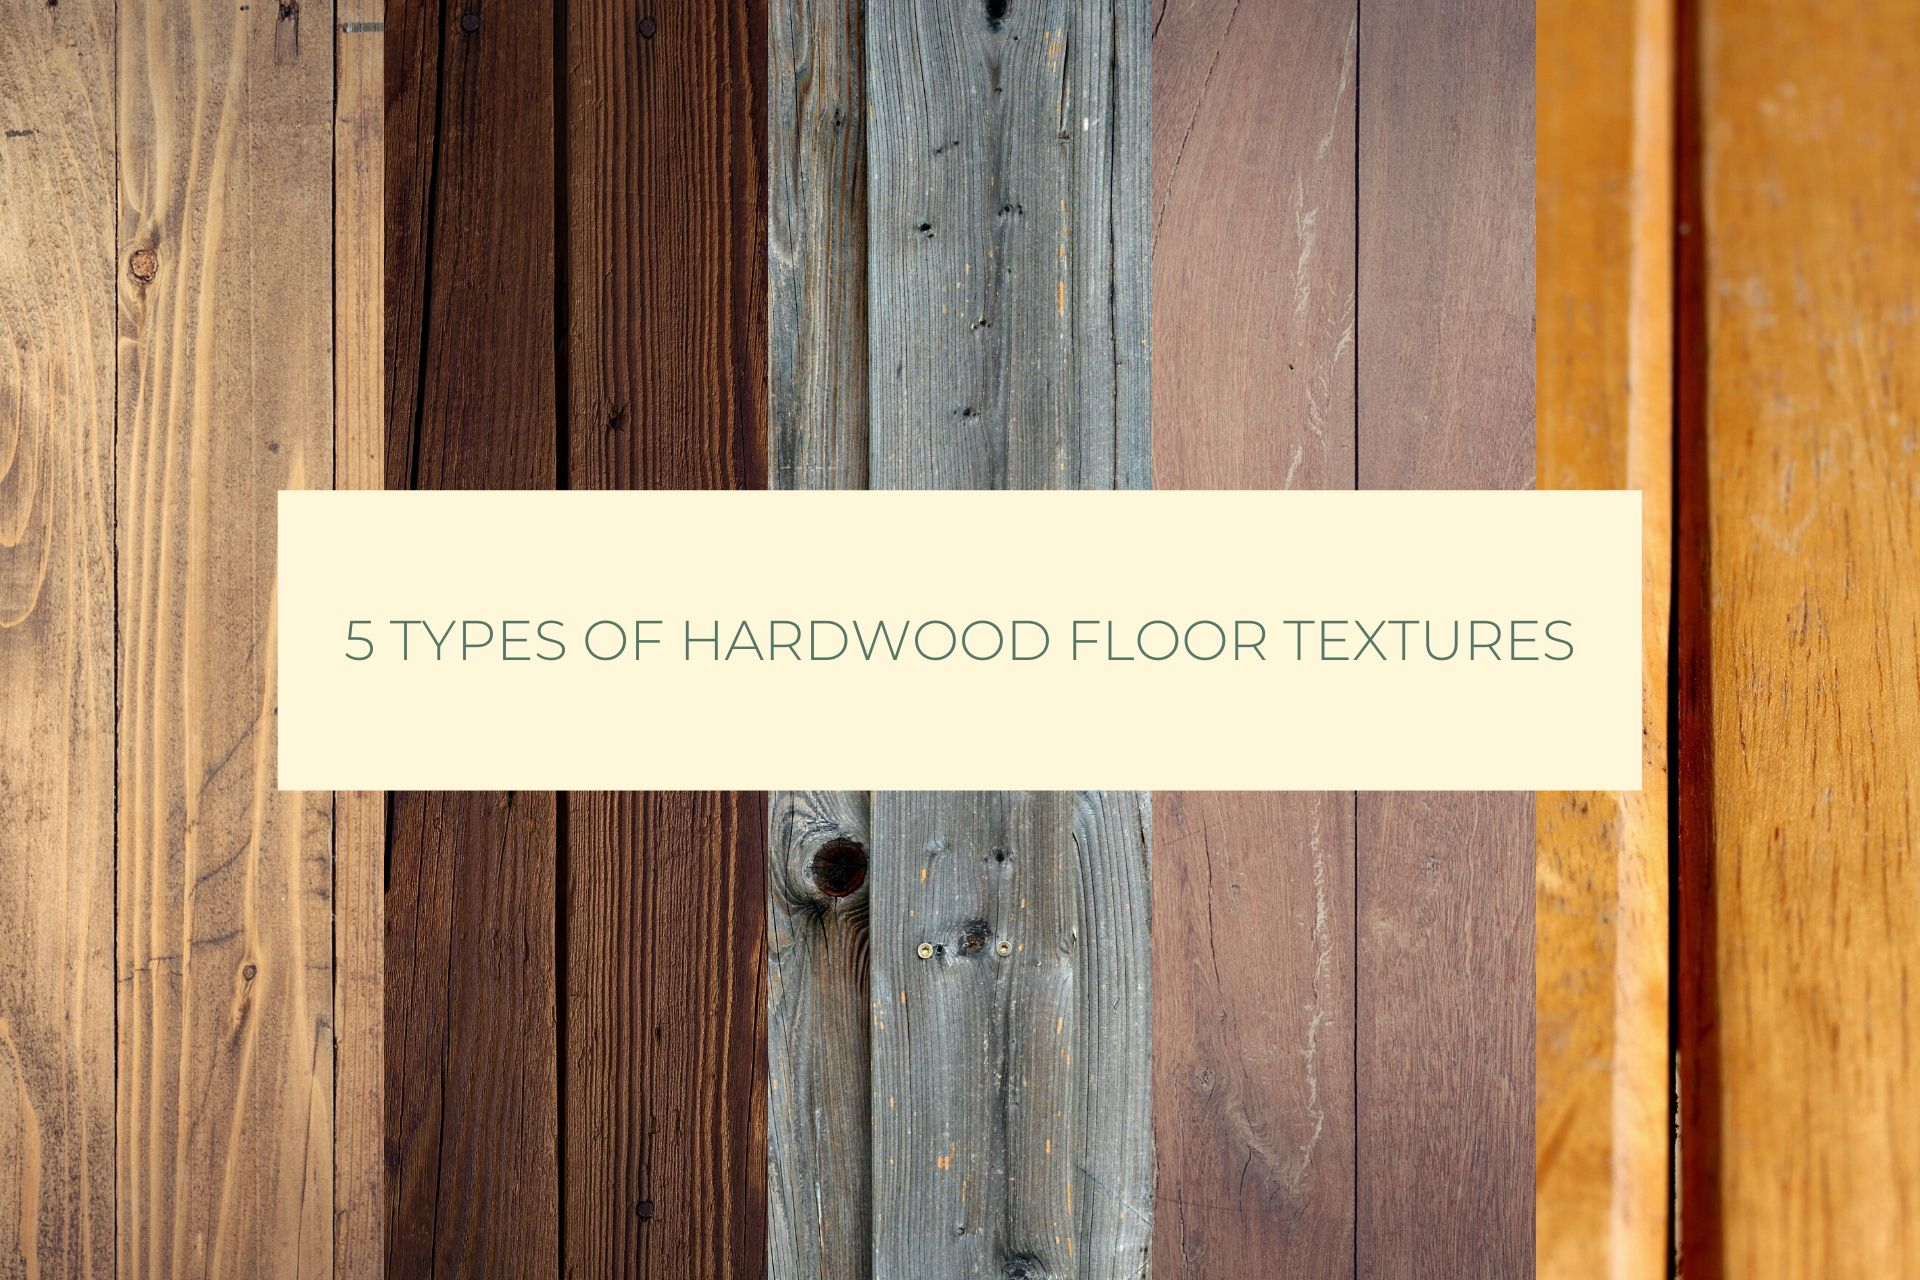 5 TYPES OF HARDWOOD FLOOR TEXTURES